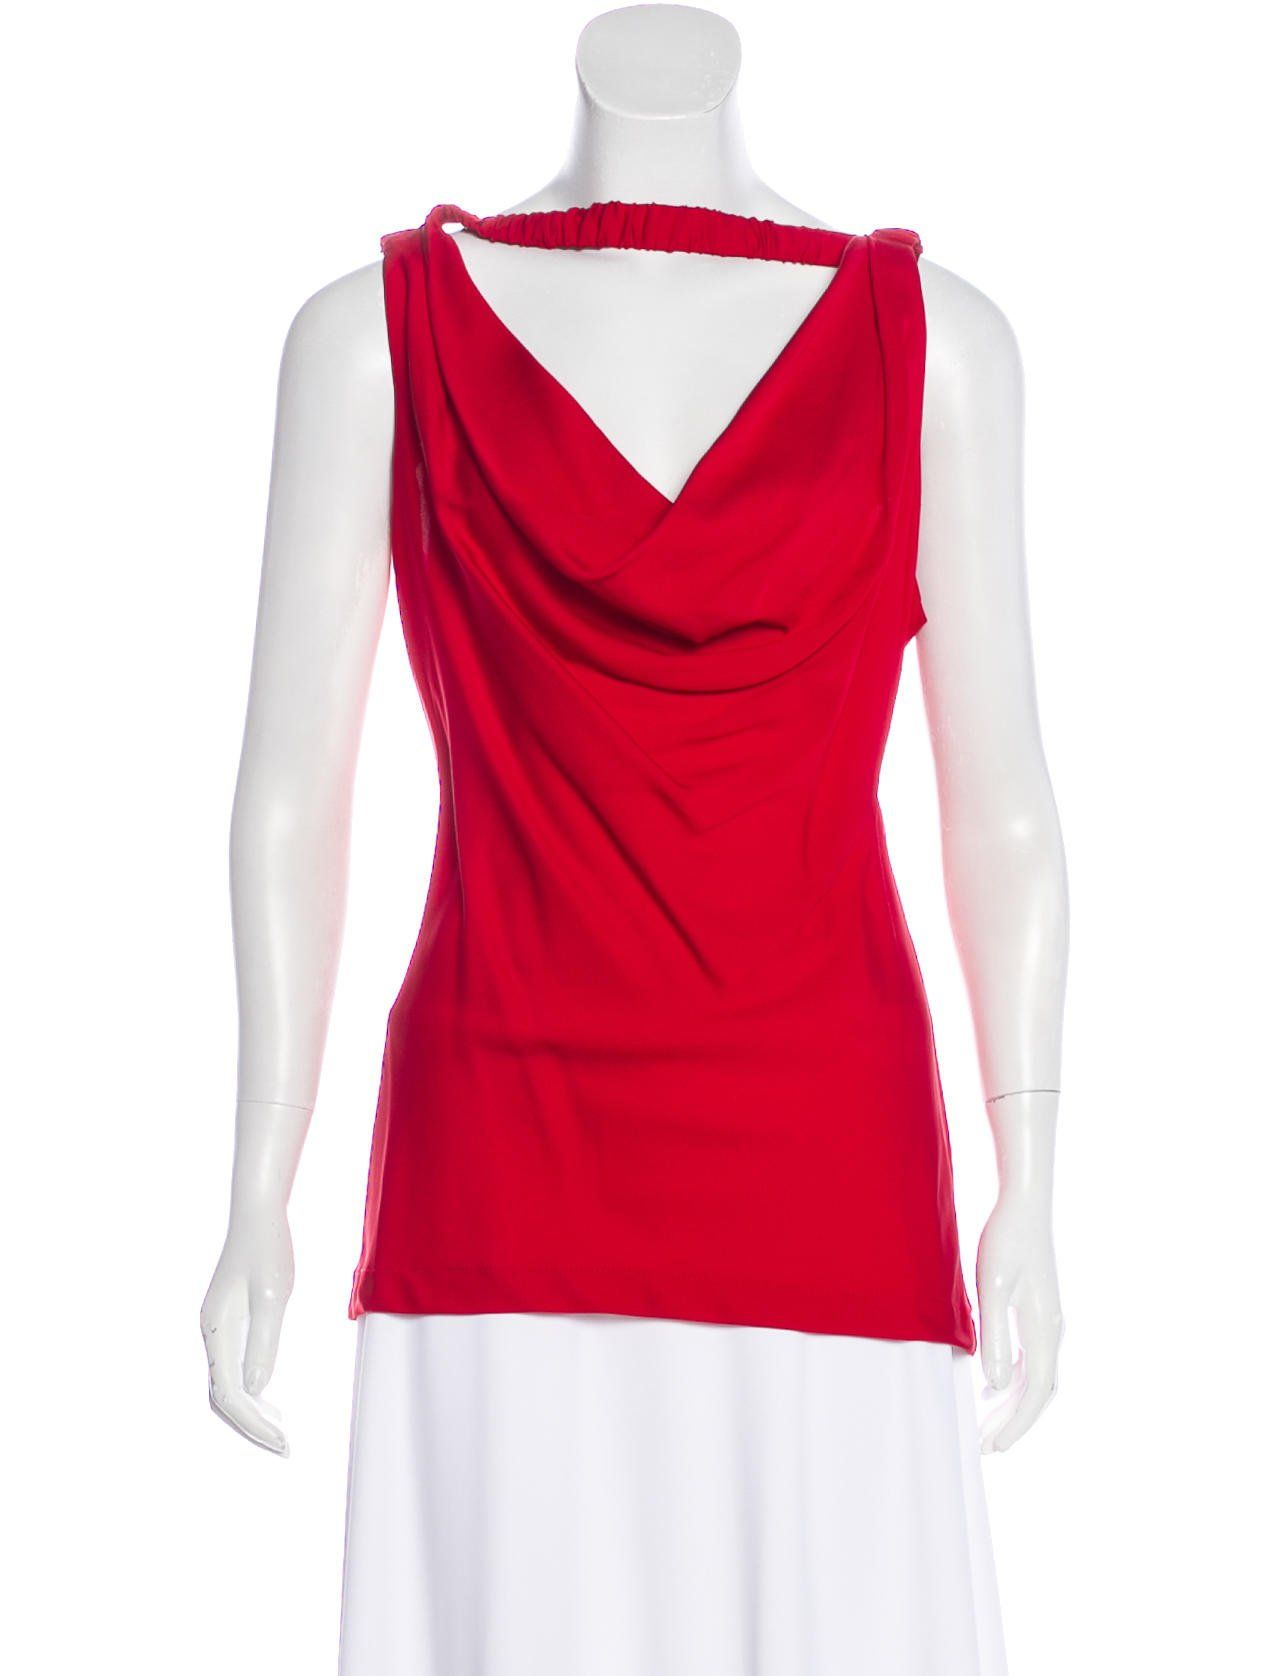 161d31e81de1bc Red Robert Rodriguez silk sleeveless top with cowl neckline and elasticized  shoulder straps.